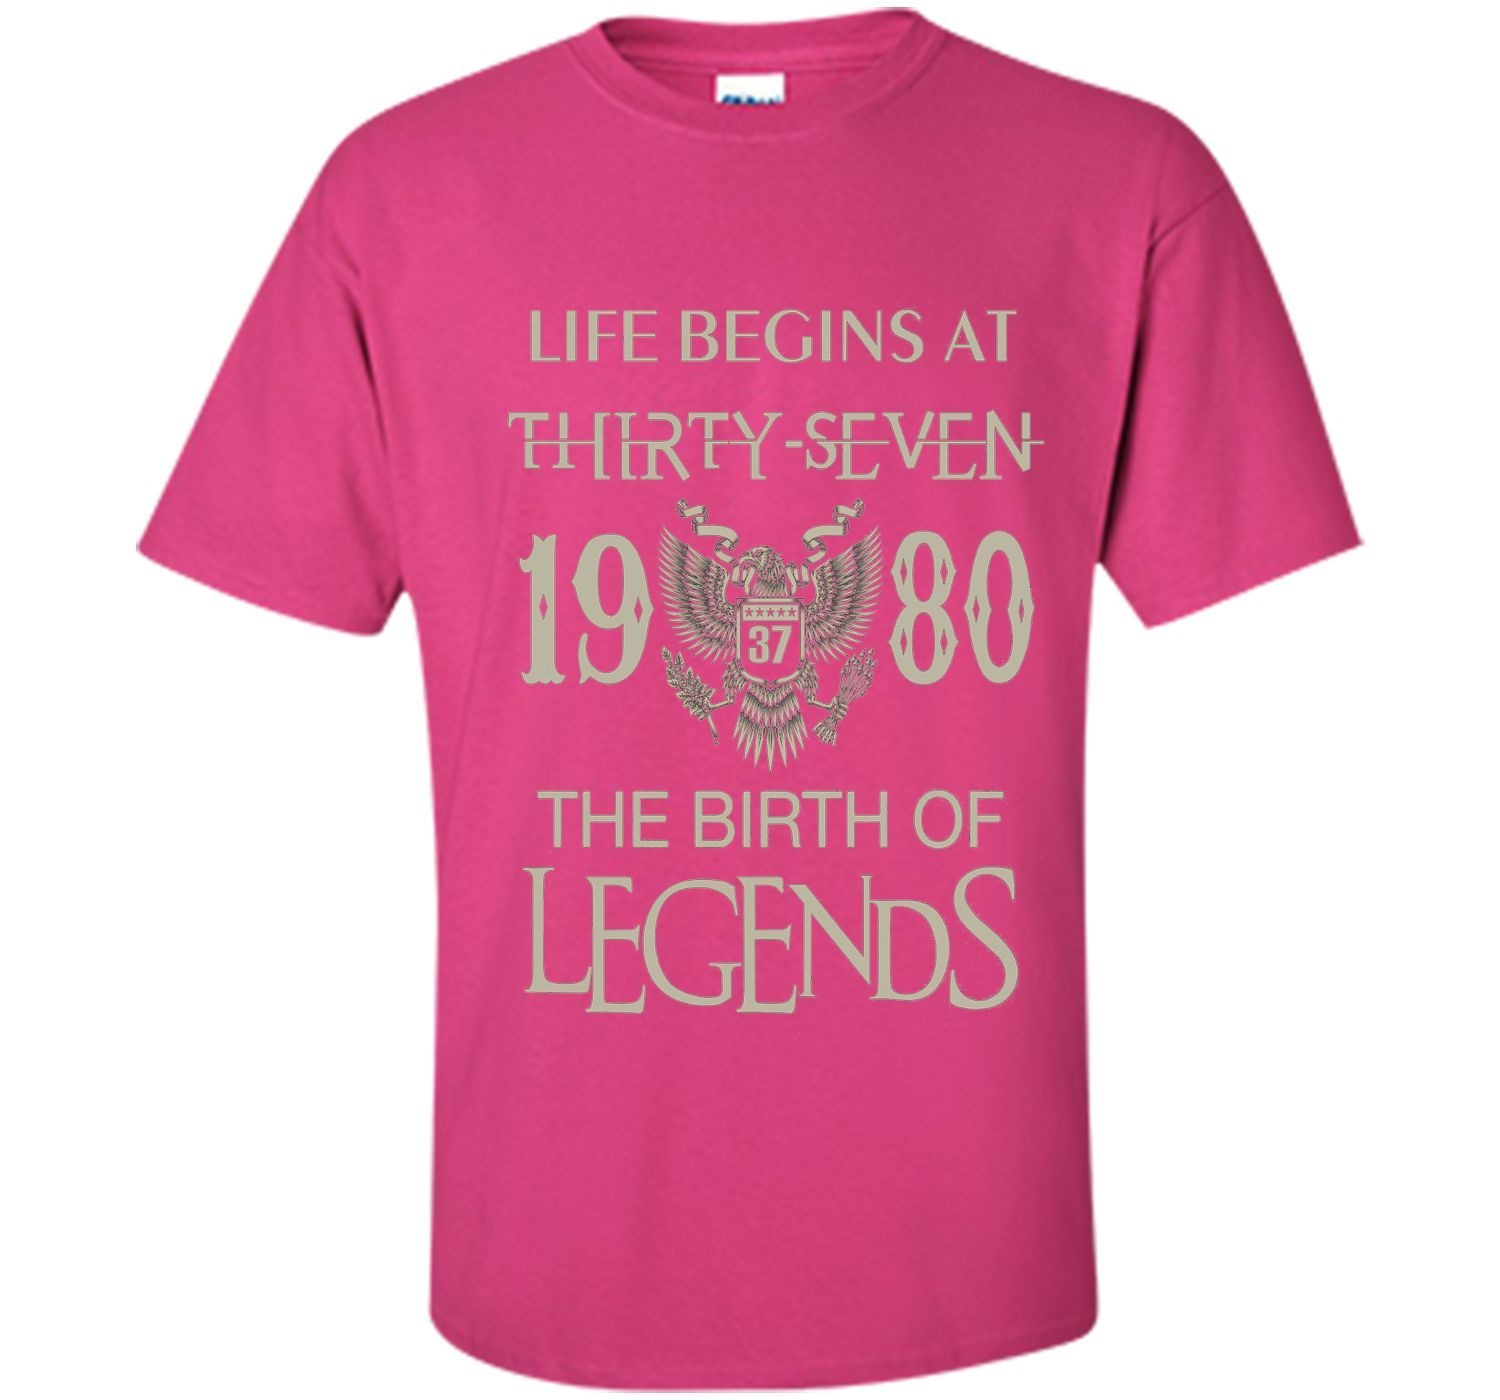 Life begins at Thirty-seven - 1980 - the birth of legends